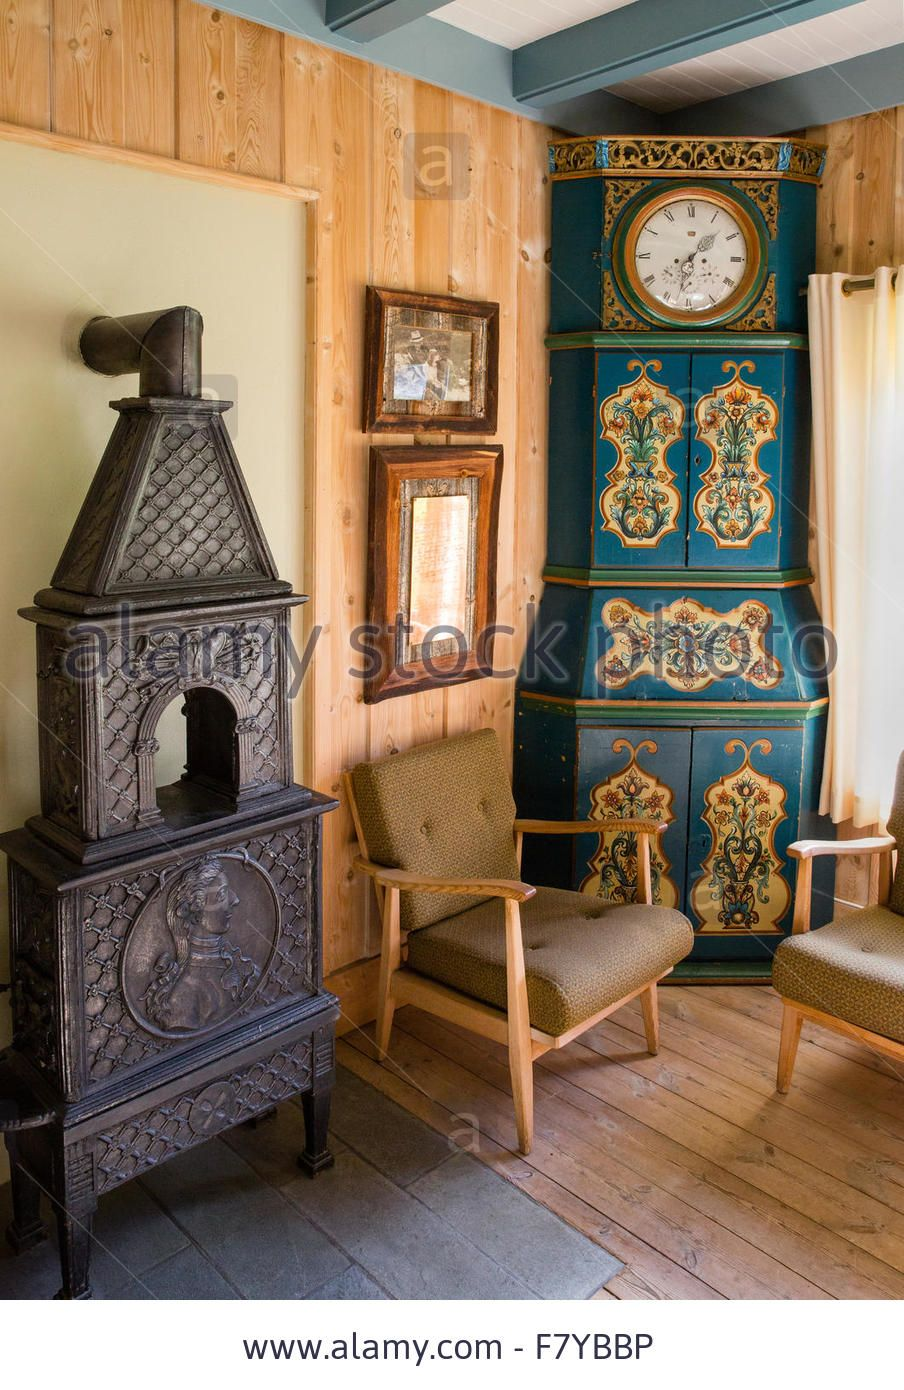 Stock Photo Elegant Scandinavian Interior Decorated With Antique Furniture At The Kongsvold Hotel In Oppl Scandinavian Interior Interior Decorating Furniture